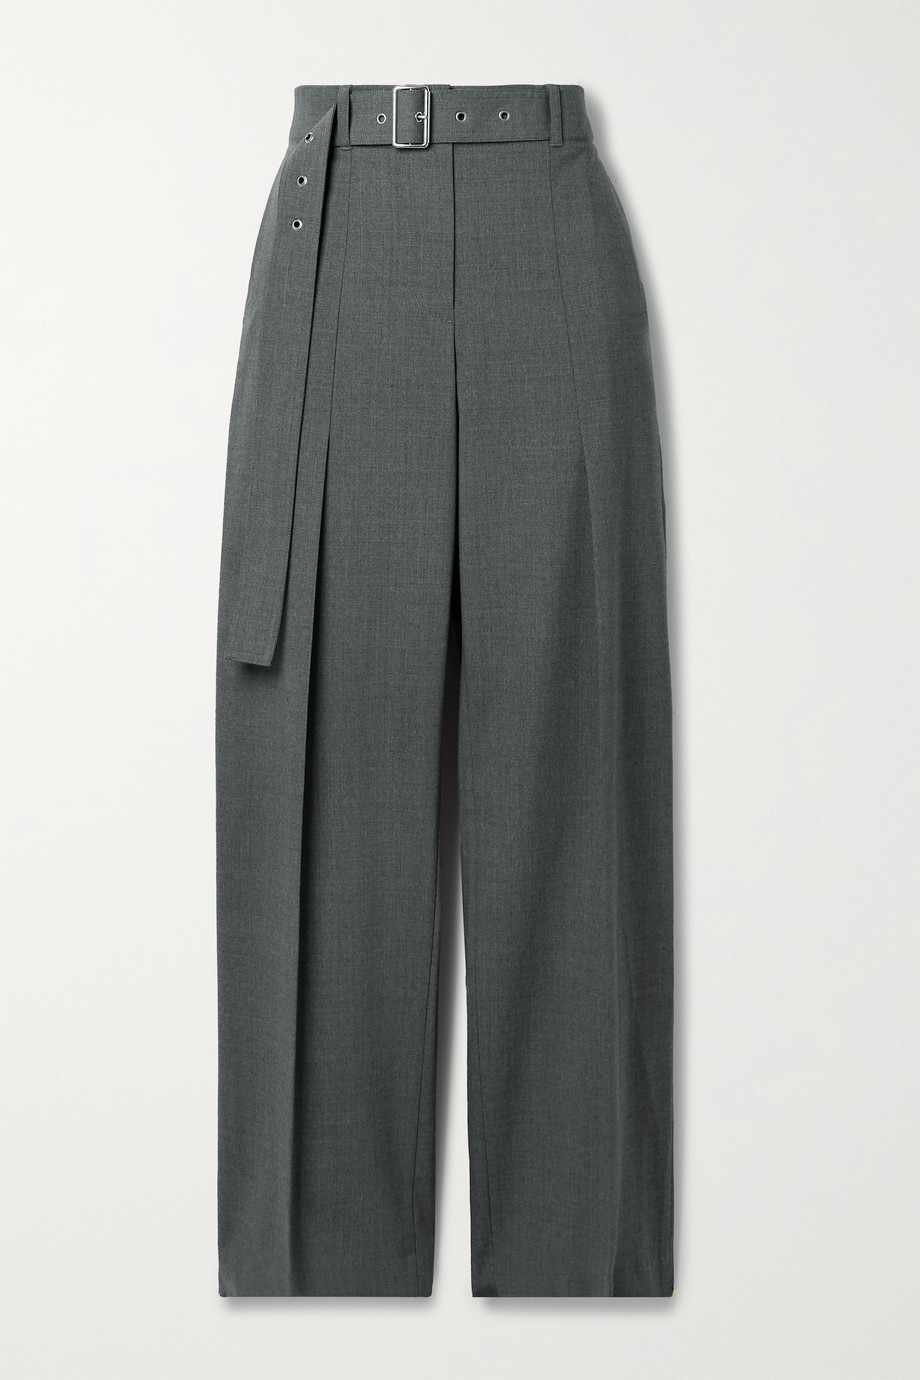 Helmut Lang Belted wool-blend straight-leg pants